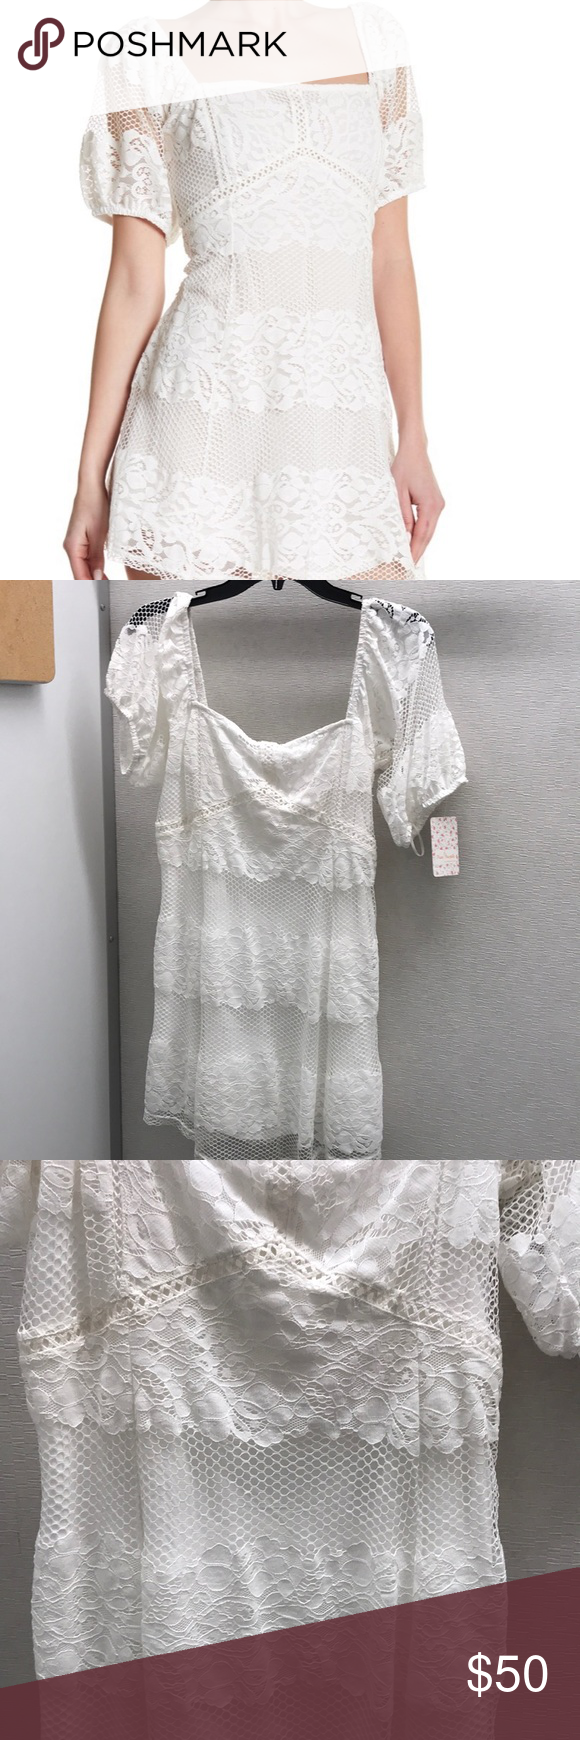 5559c378cb63 NWT $128 Free People Be Your Baby Ivory Dress S Style #: OB770125 Lace  details